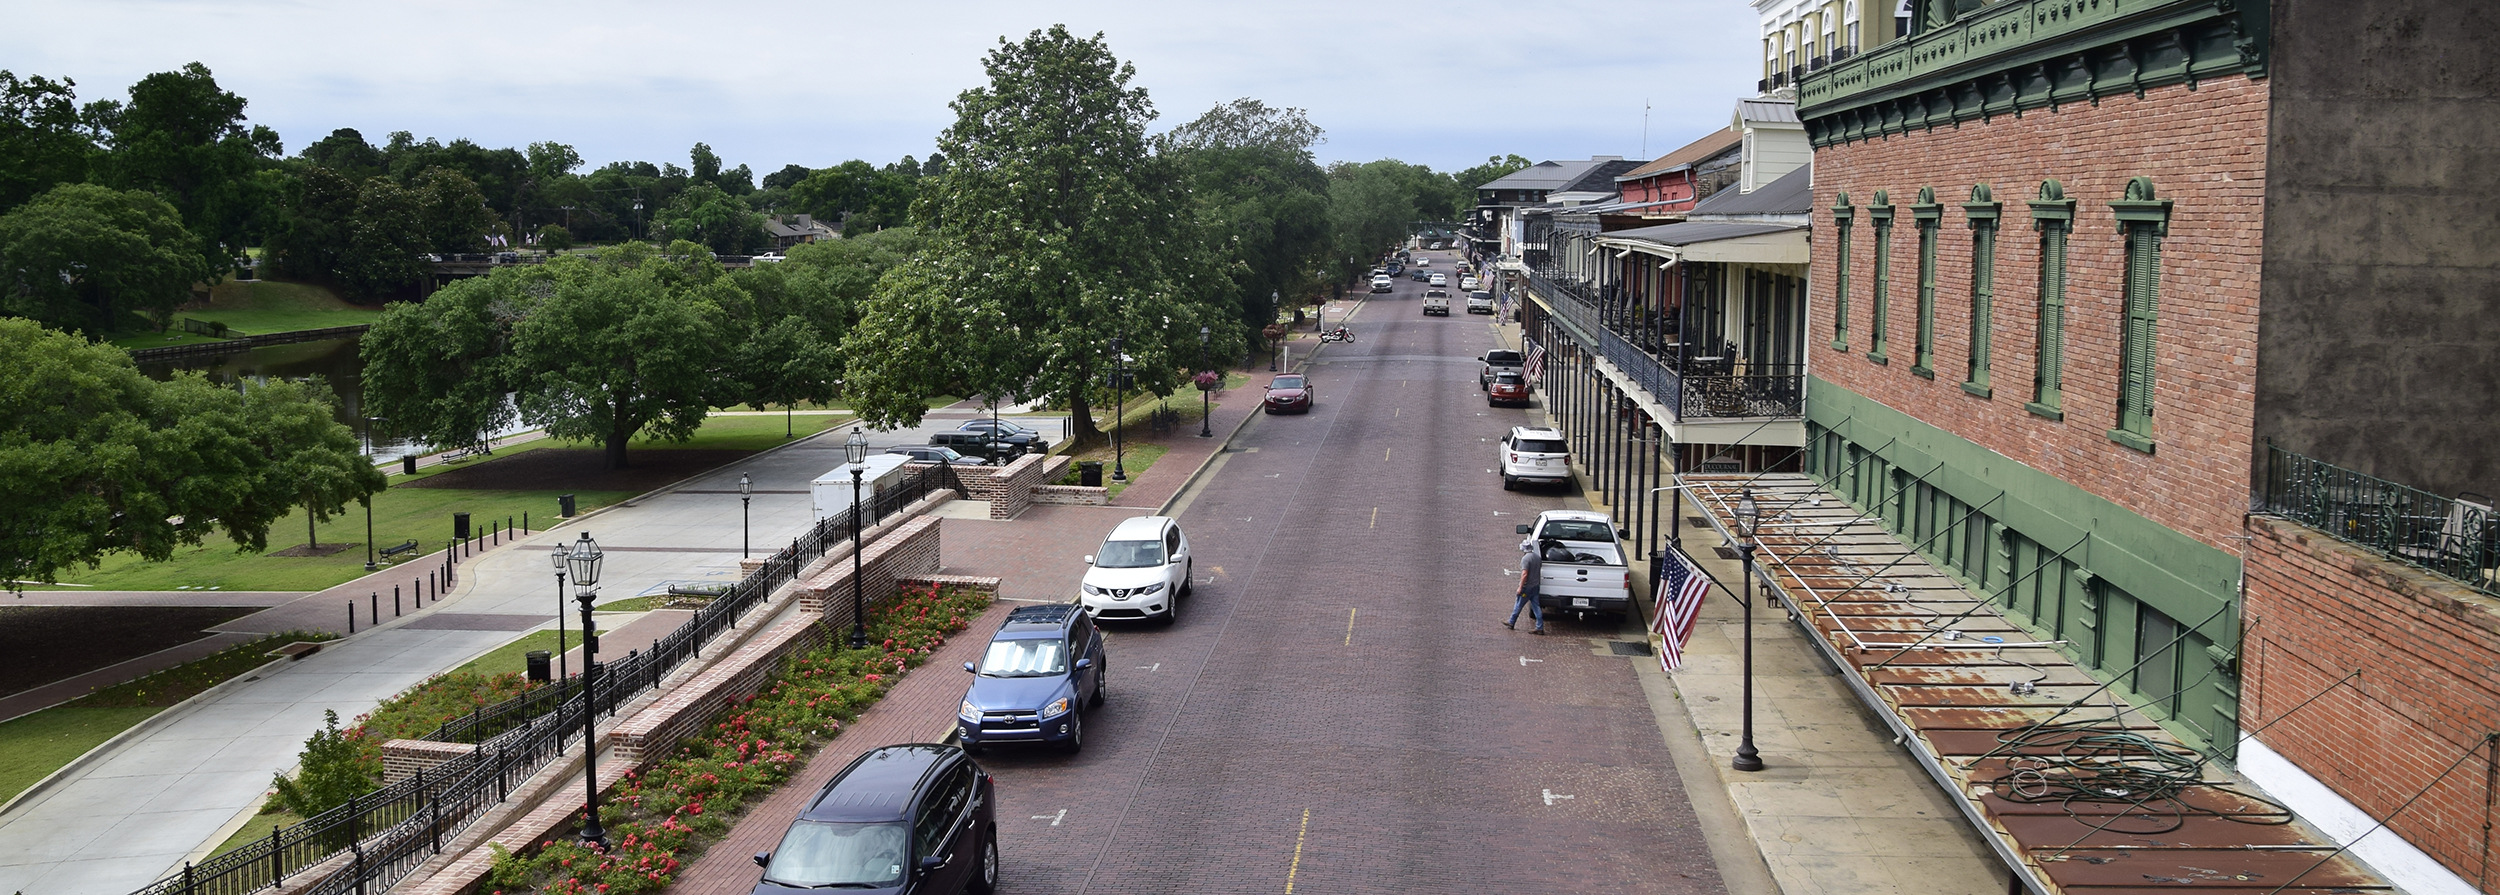 public works downtown city of natchitoches